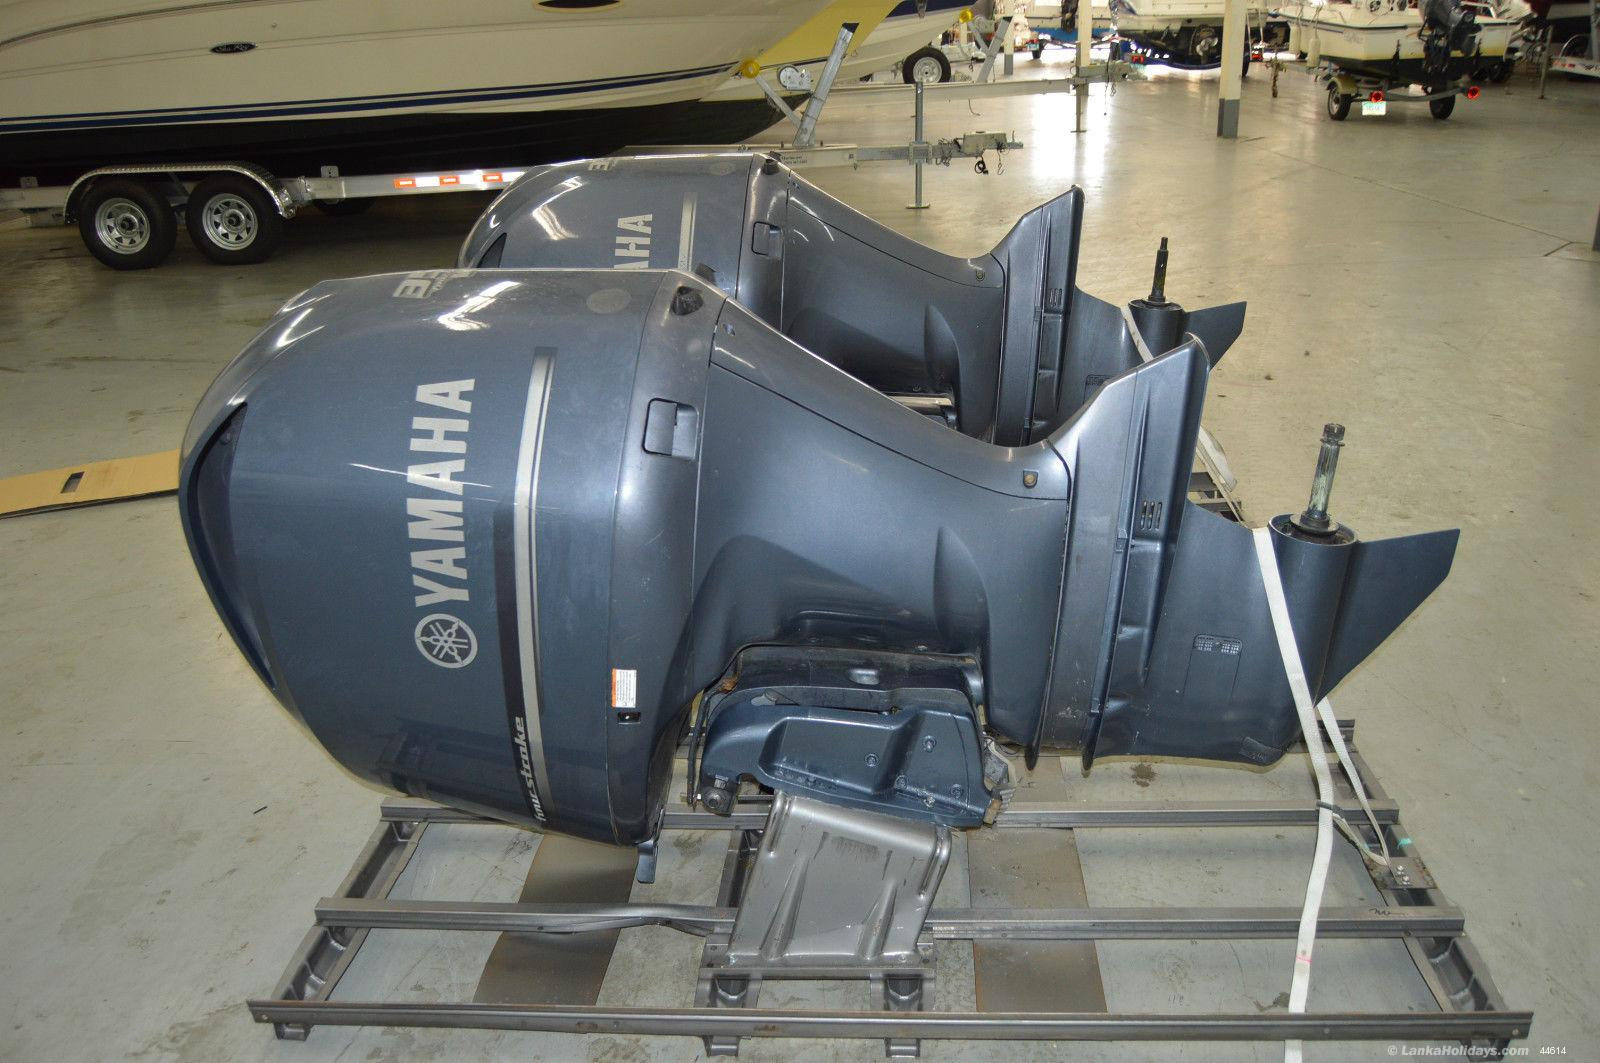 Sri Lanka Other Rentals/Hire - New/Used Outboard Motor